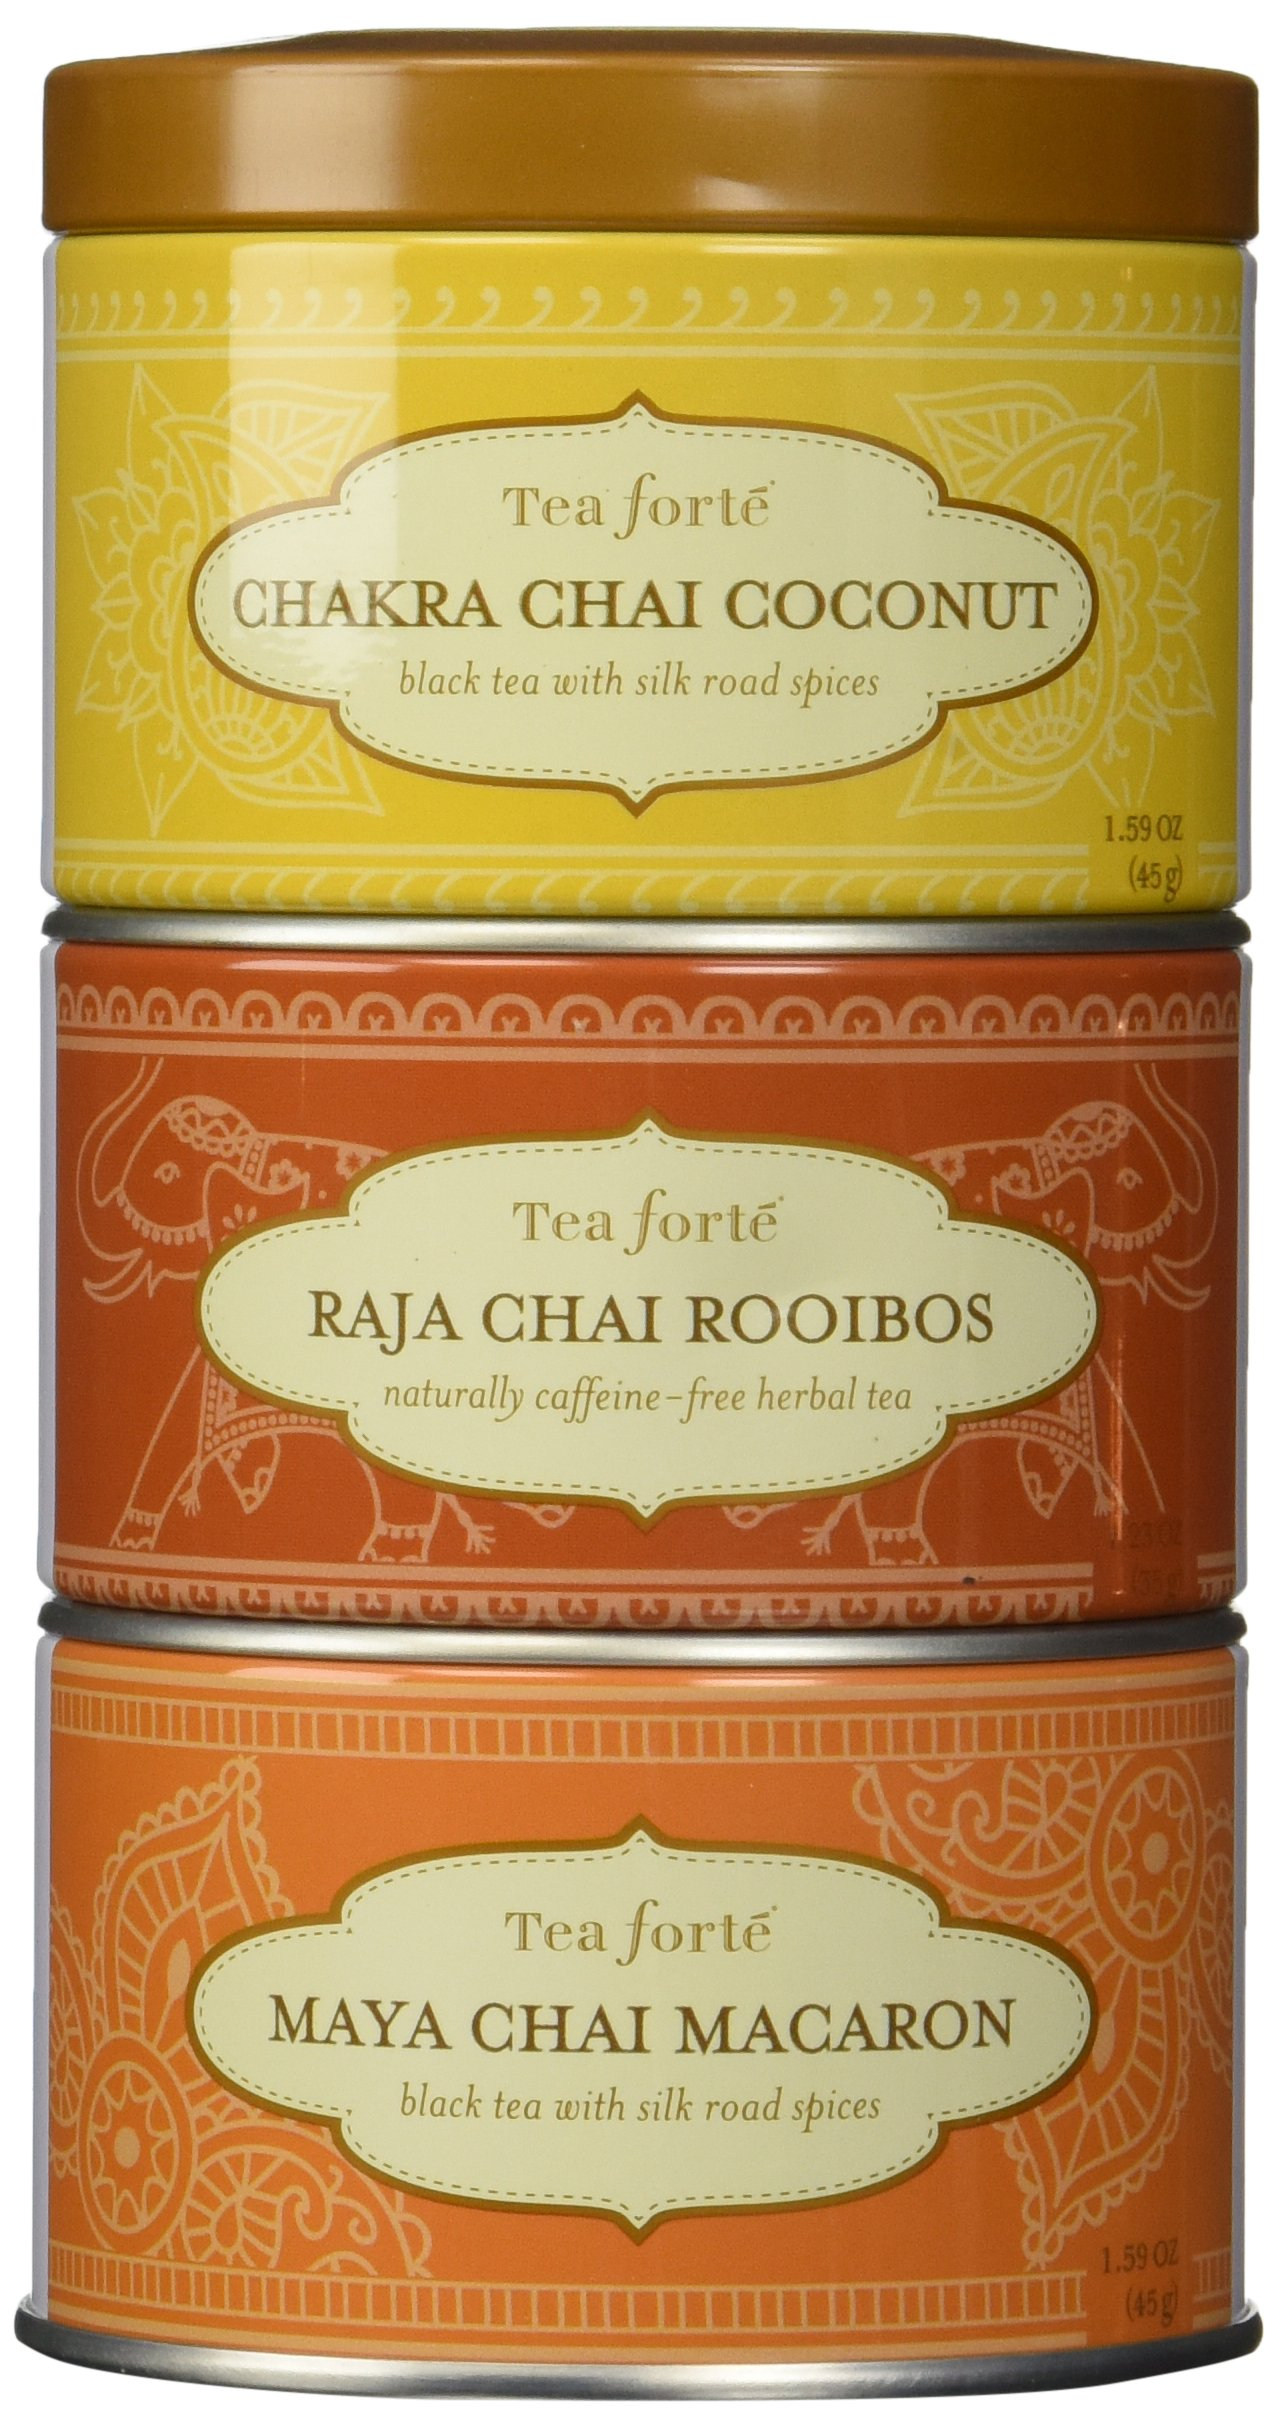 Tea Forte LOOSE LEAF TEA TRIO, 3 Small Tea Tins, Chai Tea Sampler - Chakra Chai Coconut, Raja Chai Rooibos, Maya Chai Macaron